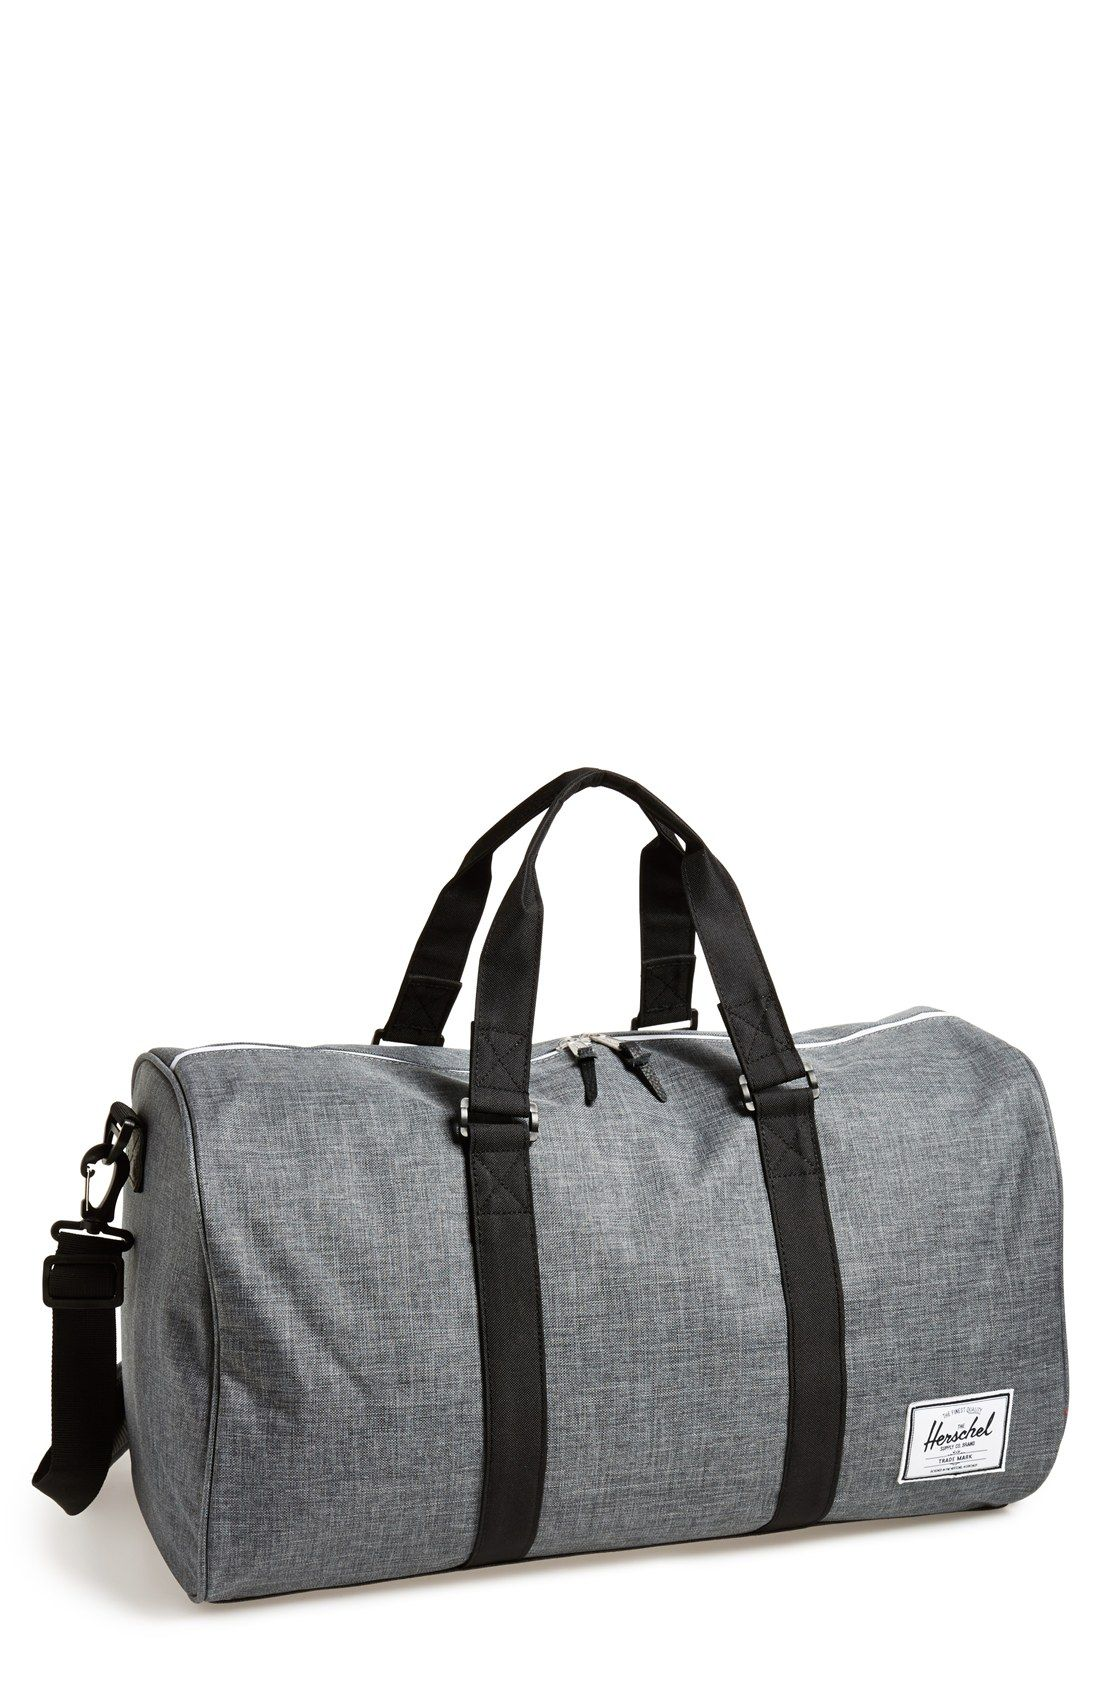 60e7db9529 Herschel Supply Co.  Novel  Duffel Bag CAD 111.74Item  829862 in Charcoal  Crosshatch More